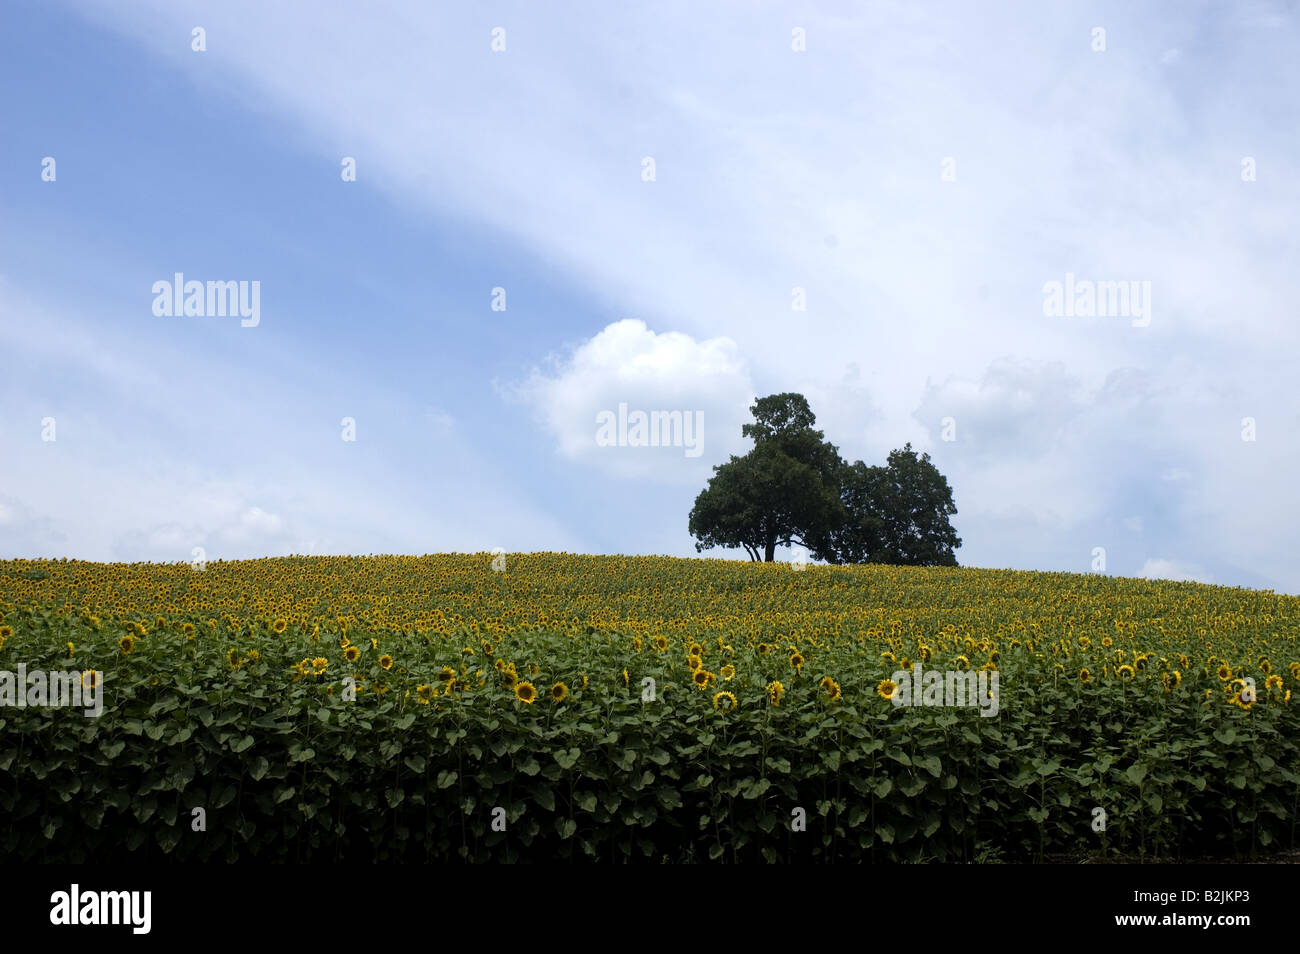 A lone tree in a field of sunflowers against a blue sky. - Stock Image